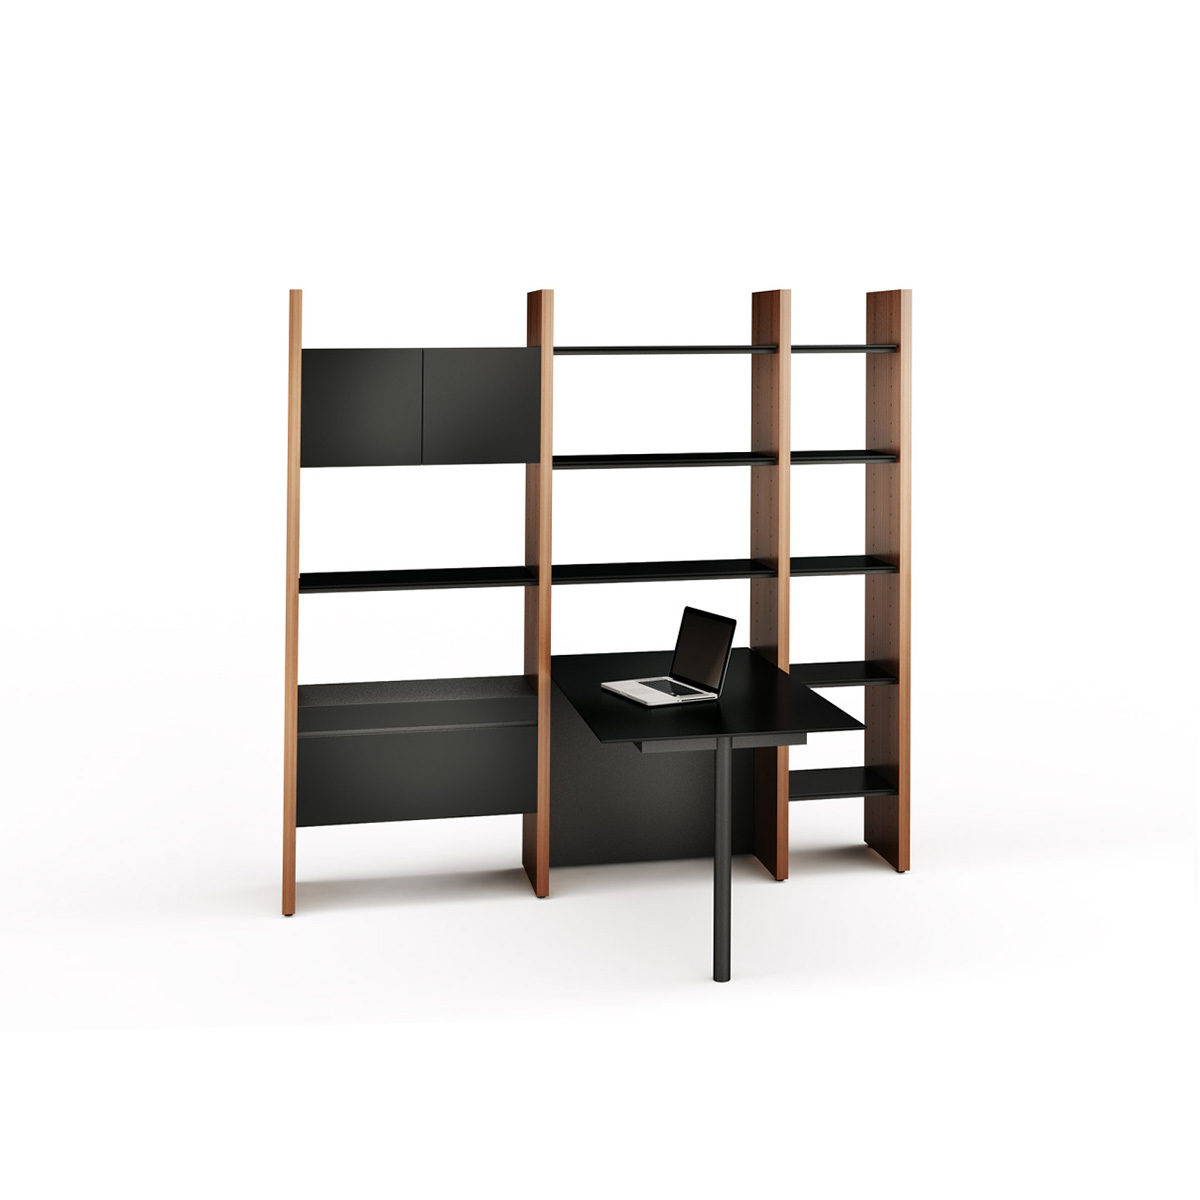 semblance office modular system desk. Semblance Office Modular System Desk A